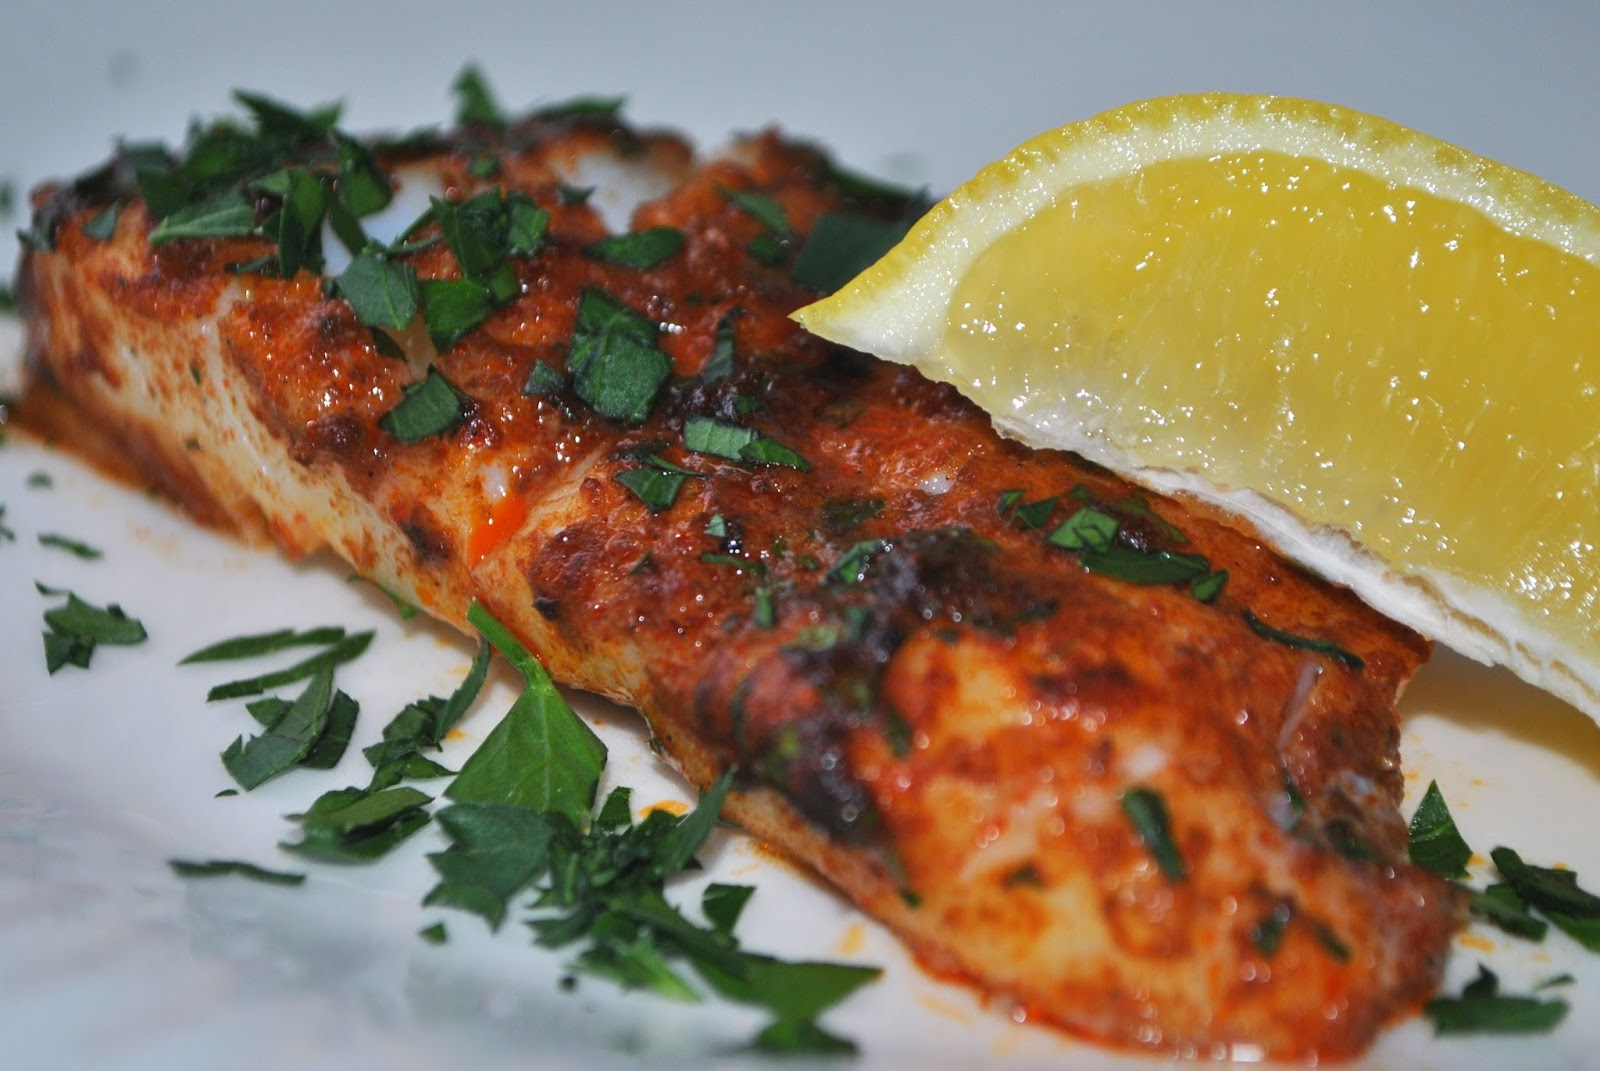 baked lemon herb cod baked cod with crunchy baked lemon herb cod